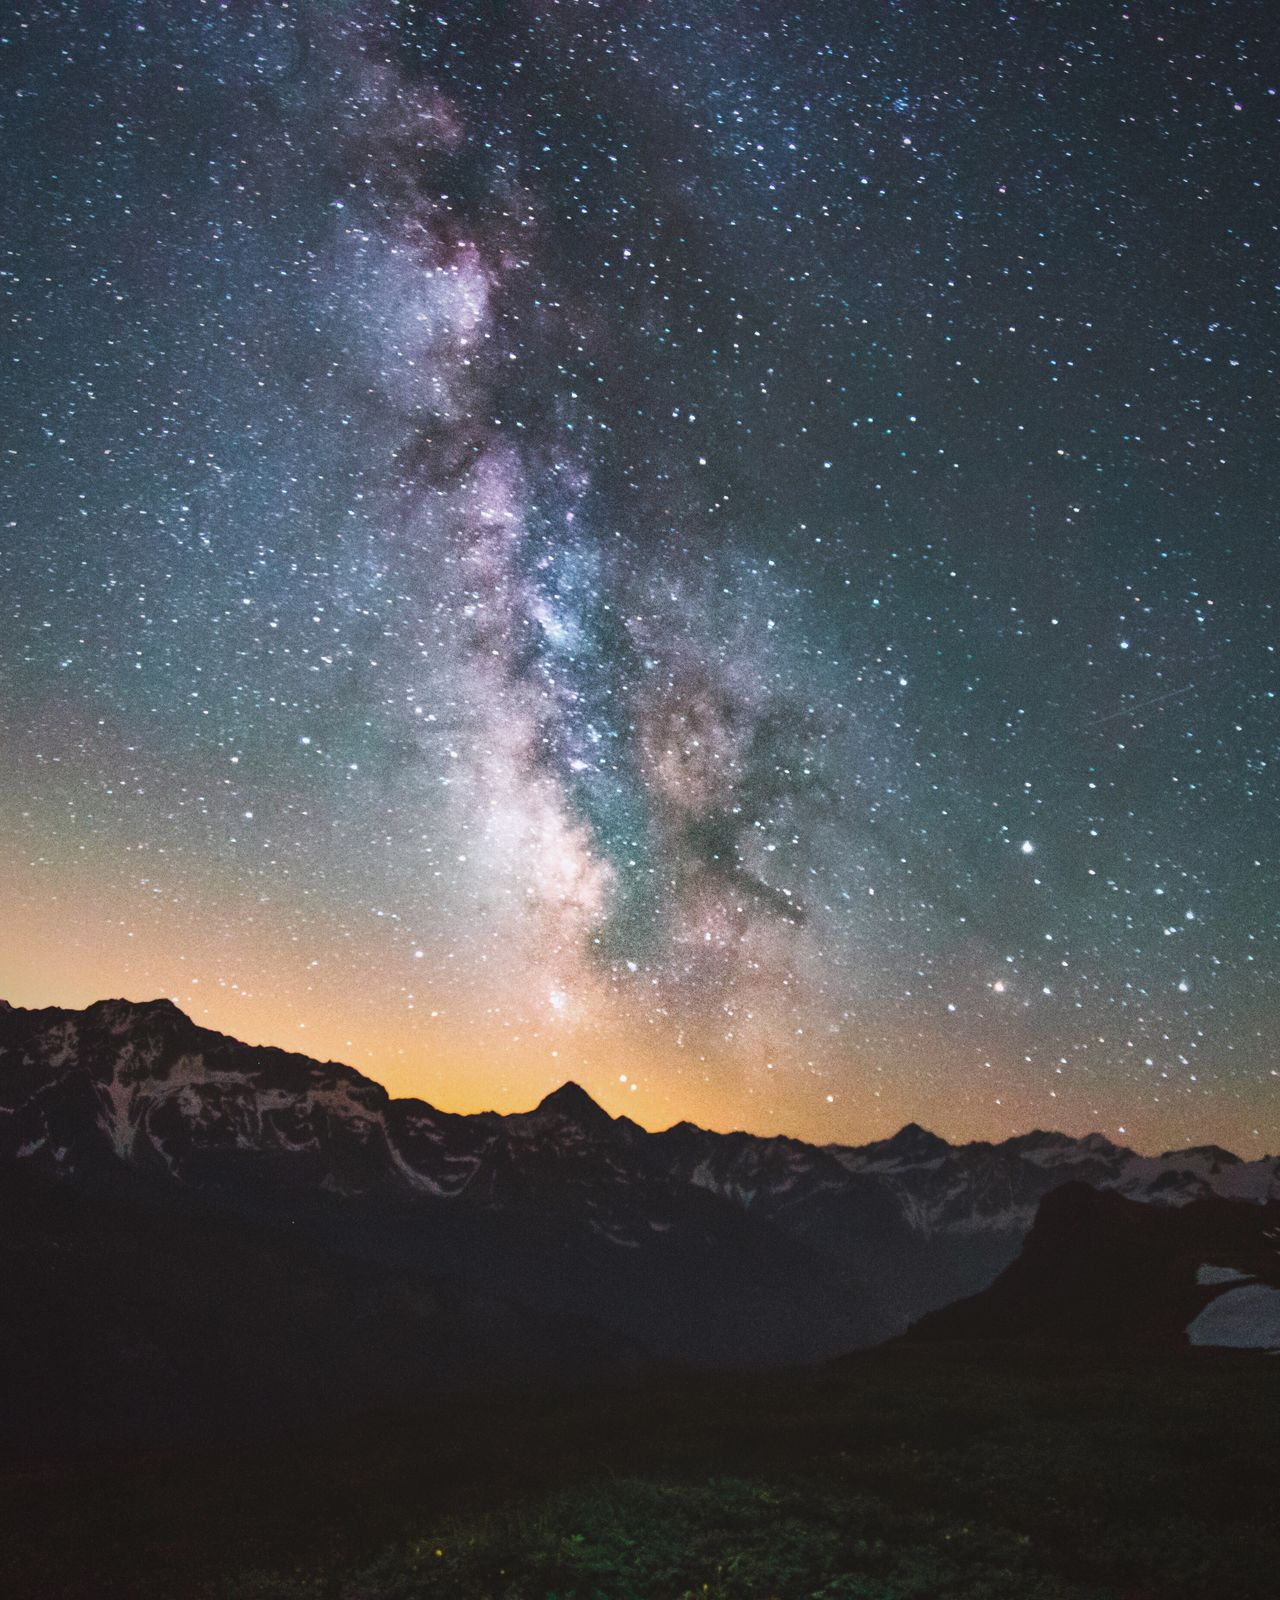 Nightphotography Milkyway Starry Sky Mountains Landscape Nature Stars Night Sky Colors Long Exposure Switzerland